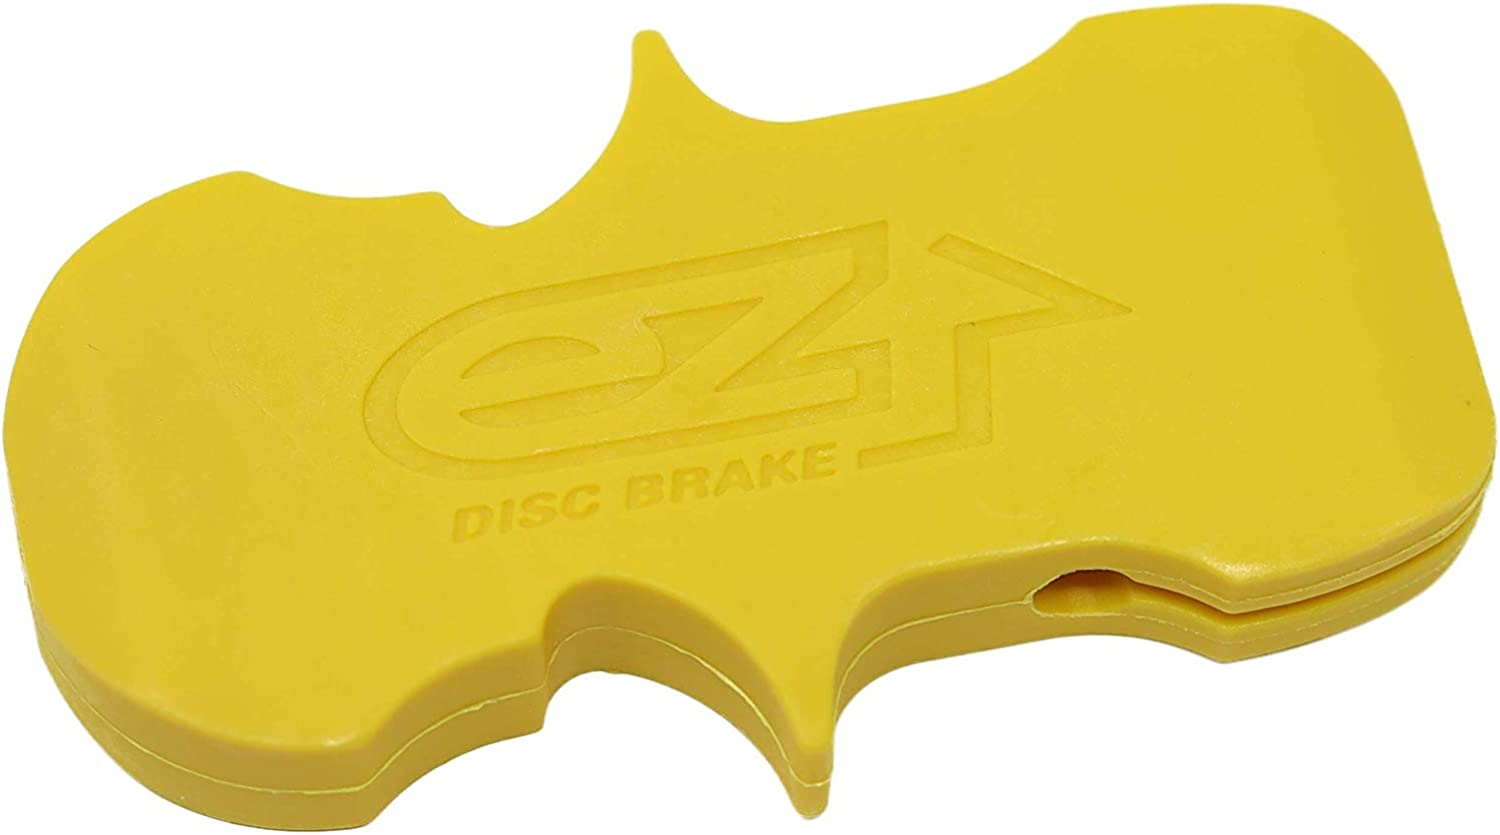 RSN Sports Bicycle Disc Super popular specialty store Brake Recommended Mountain Bleed Bike Block Caliper